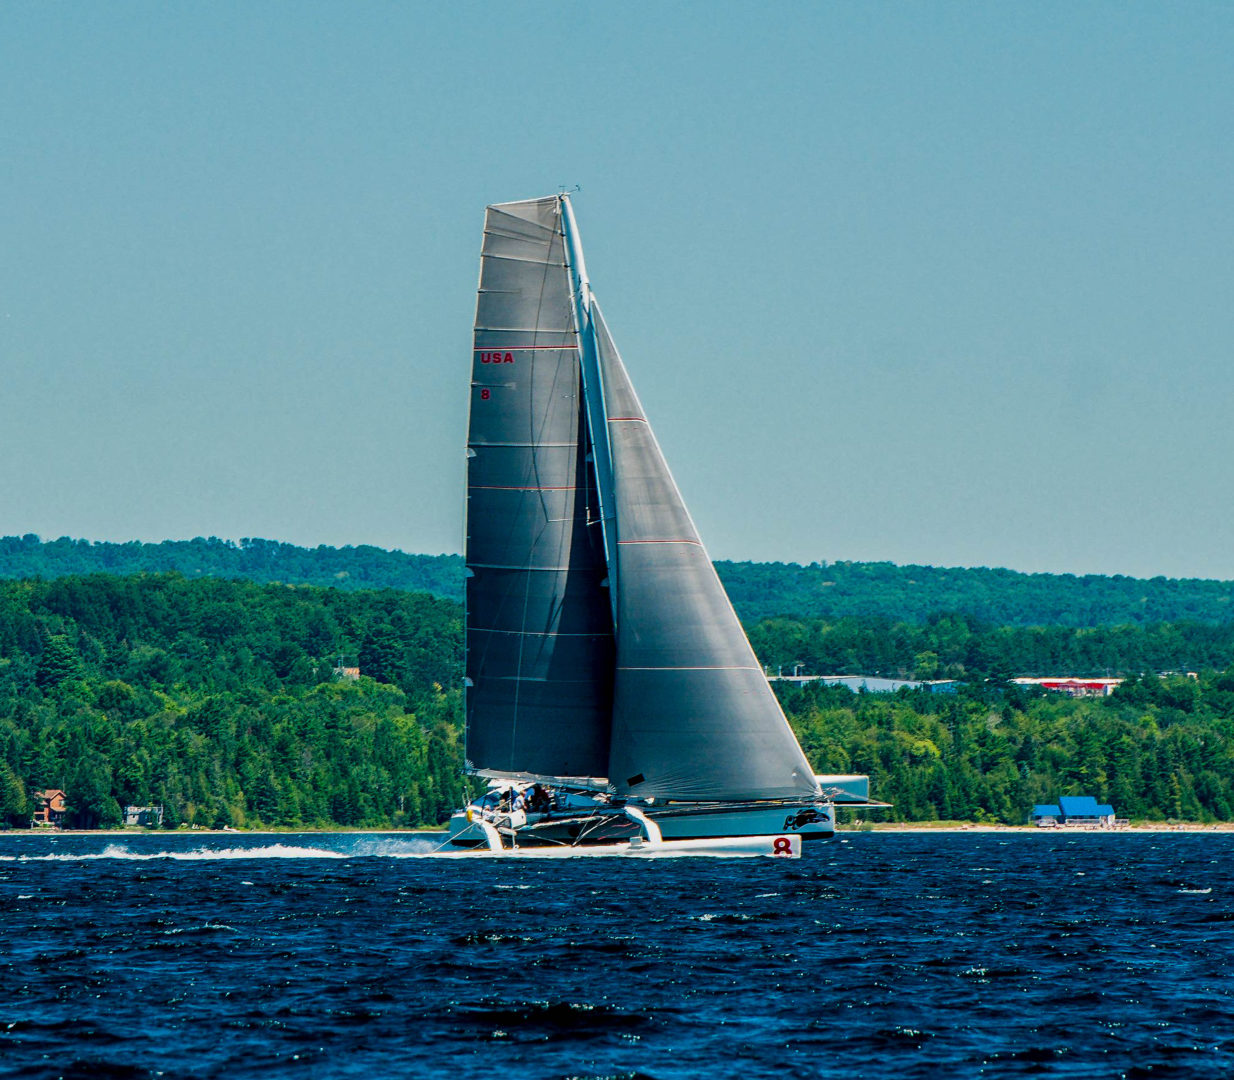 Arete sails into history with new Chicago Mackinac course record